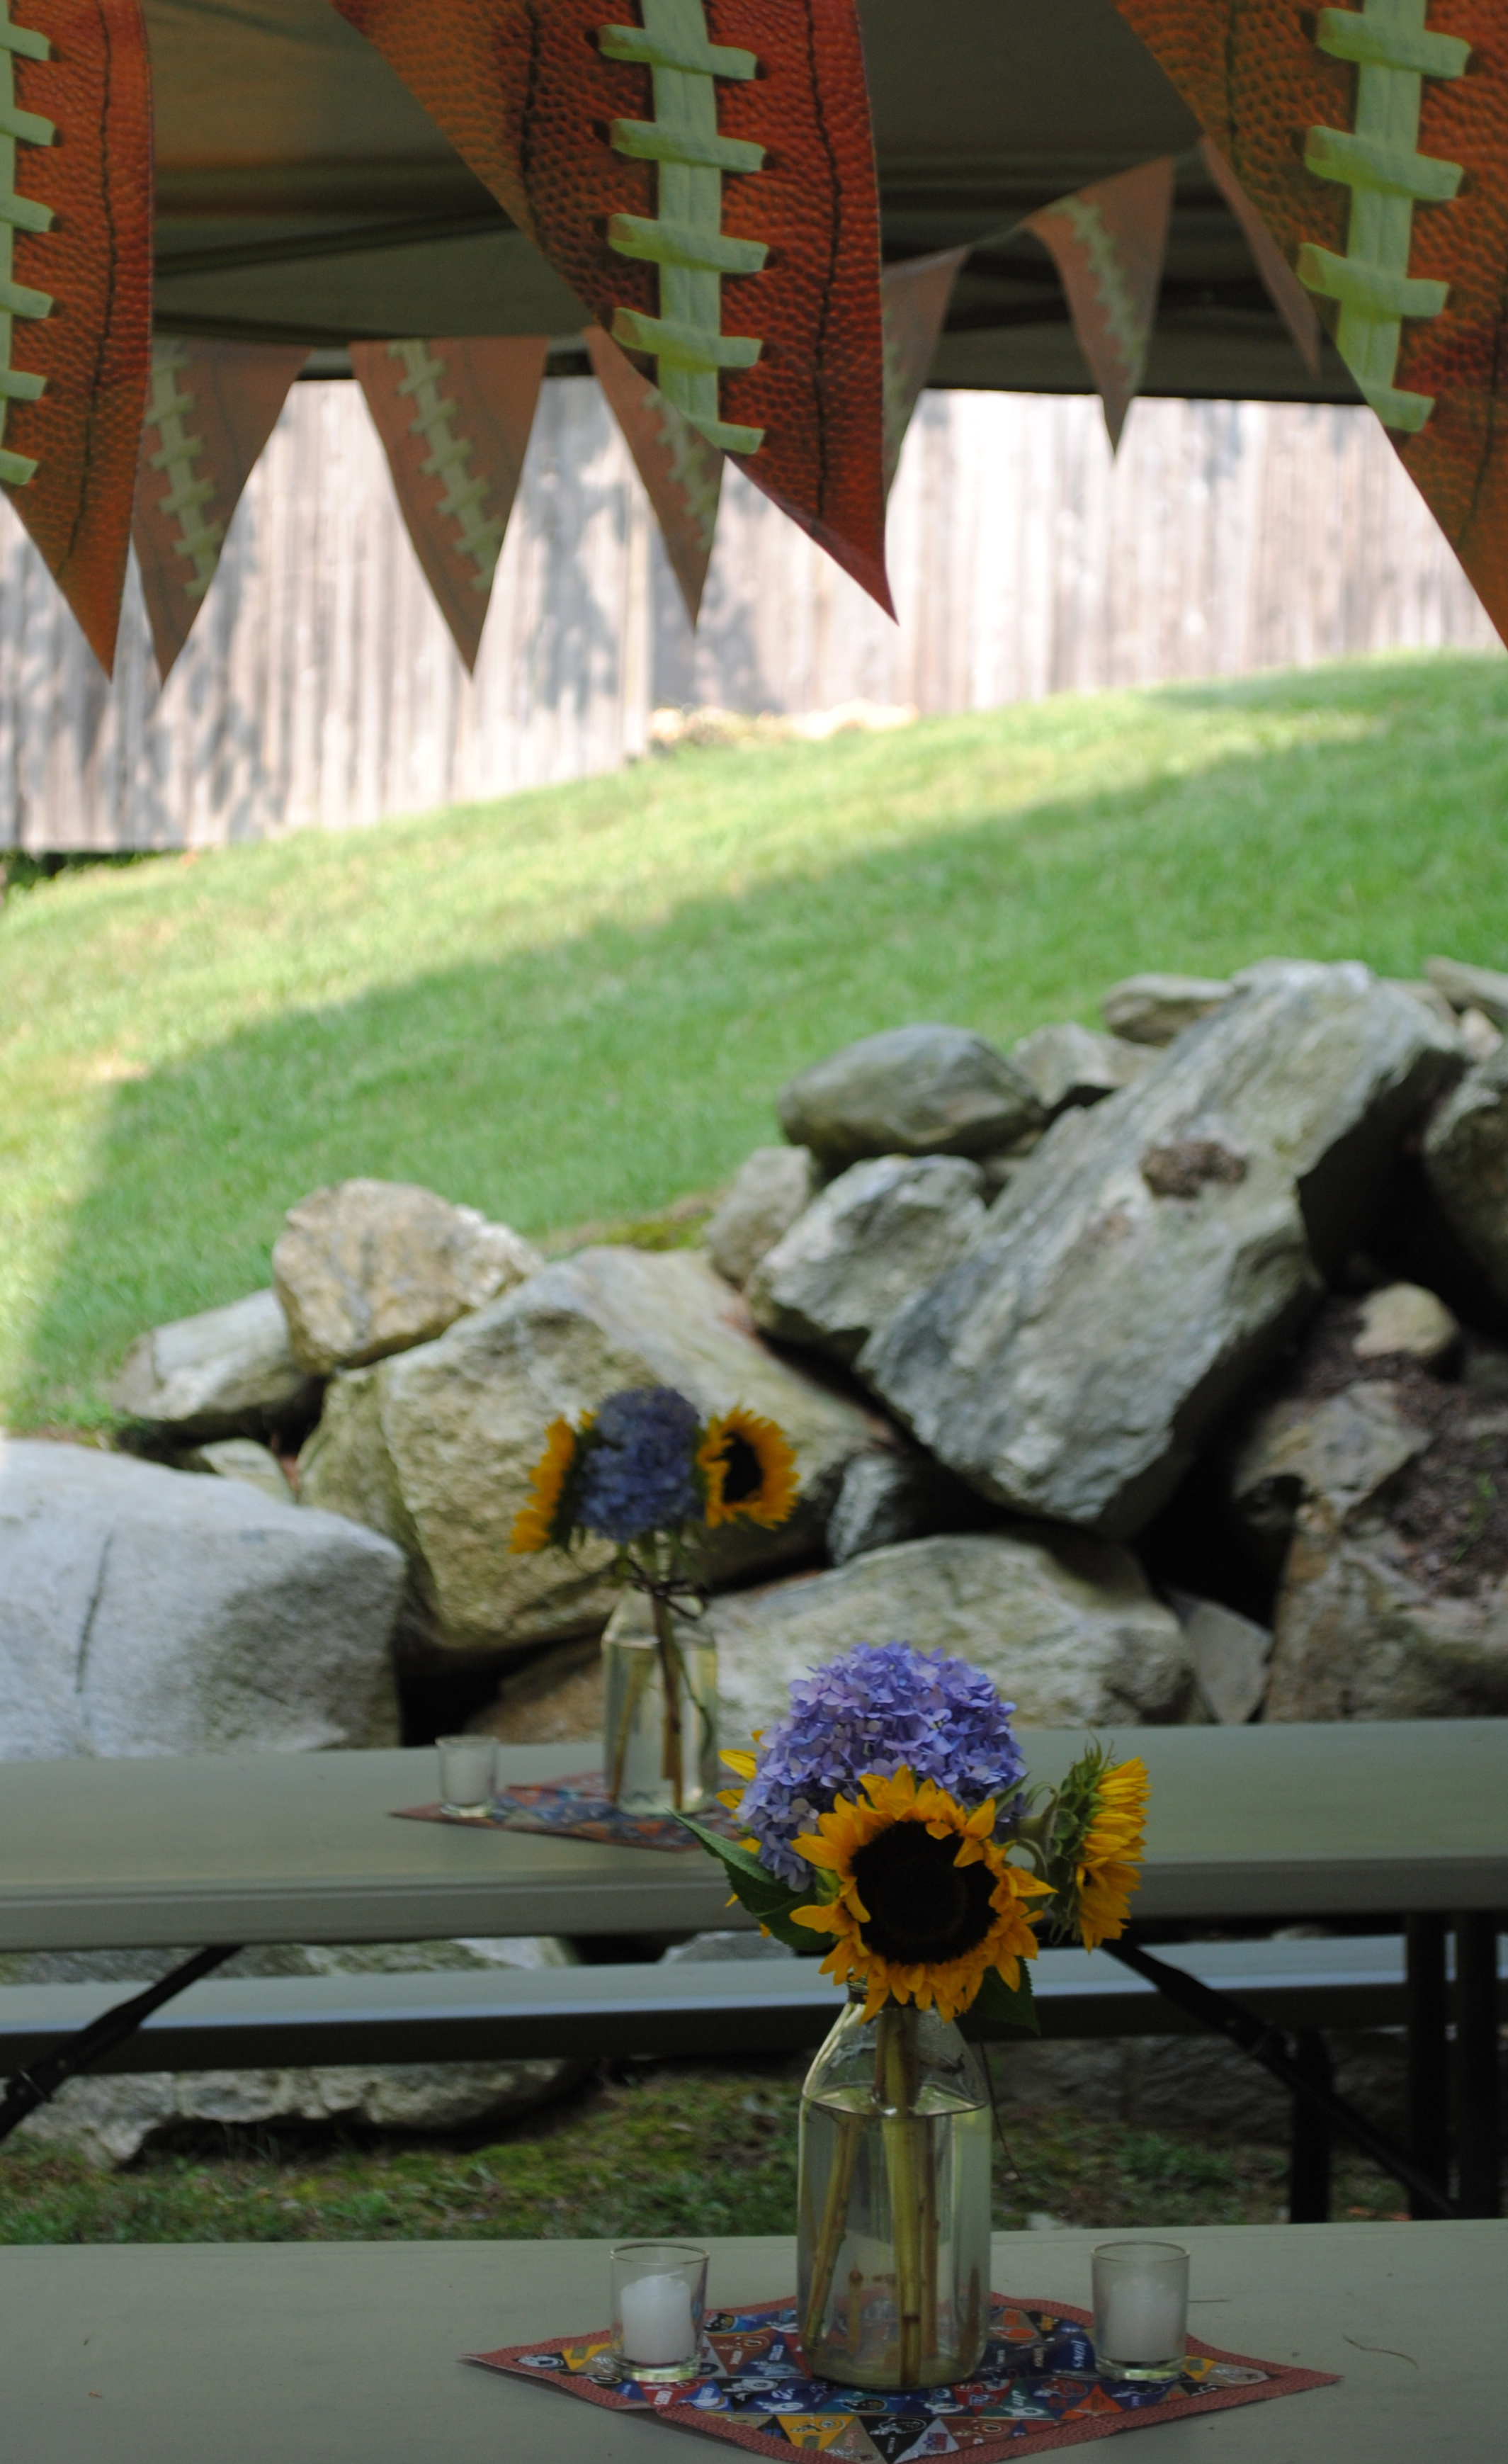 ... made some simple centerpieces for the picnic tables a football banner